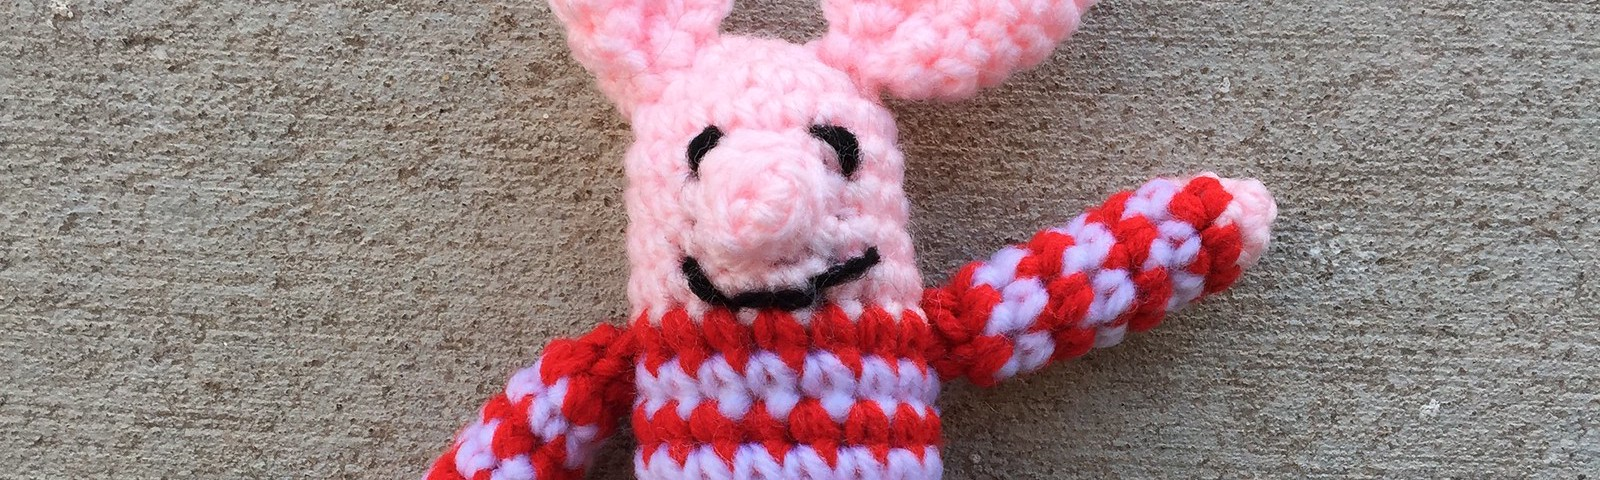 A miniature meta crochet pig named Olivette